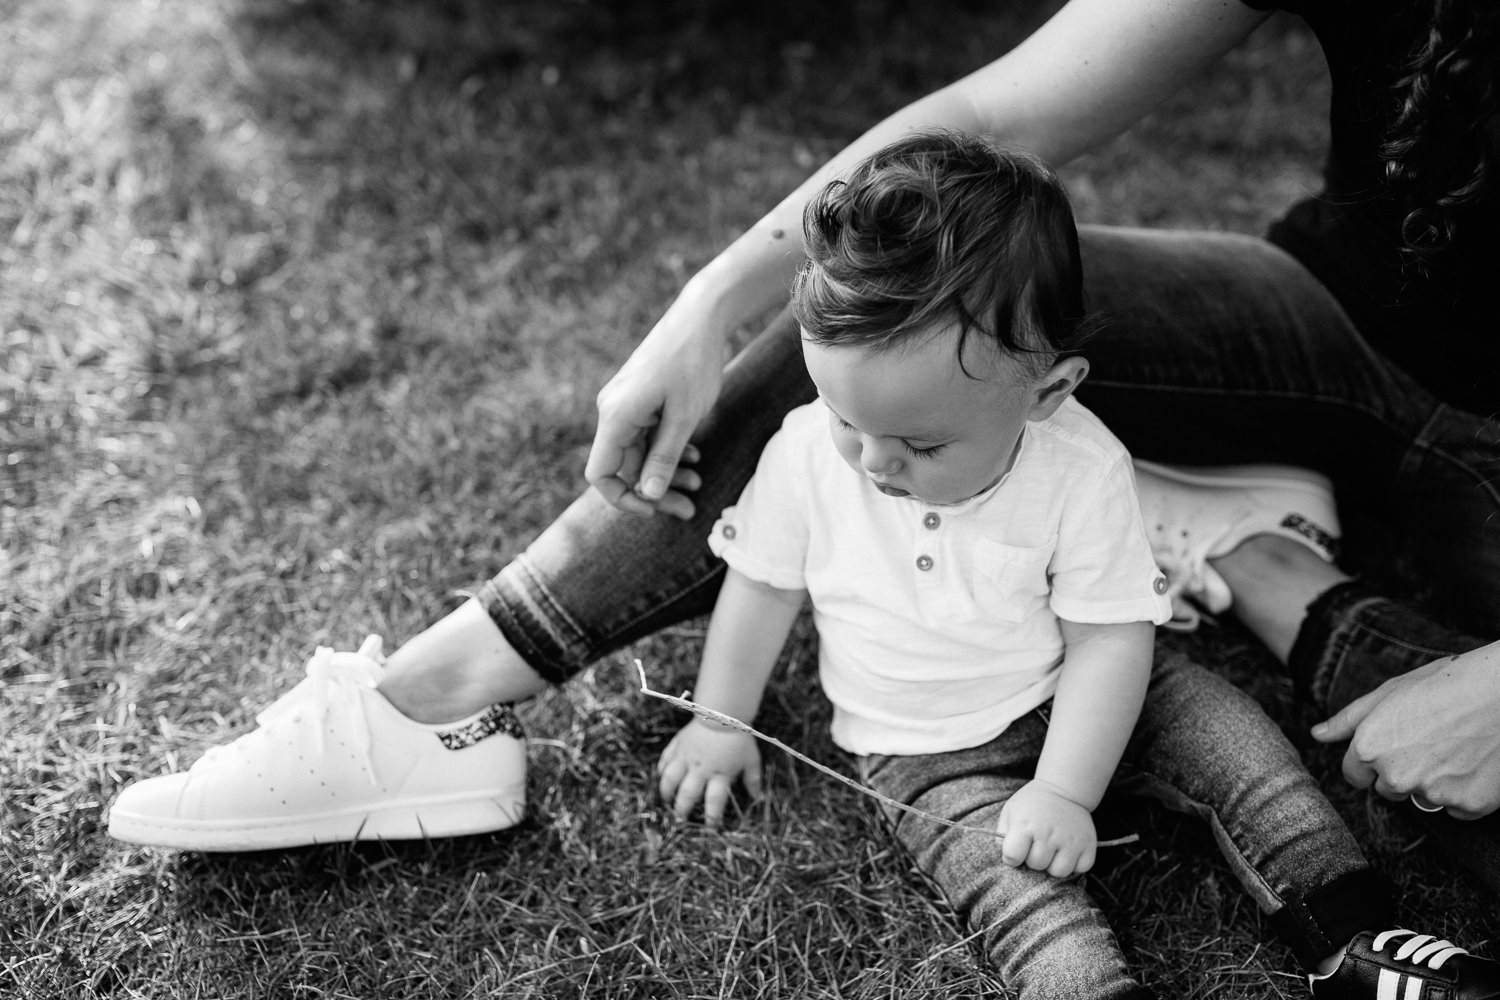 York9 month old baby boy with dark brown hair wearing white t-shirt, jeans and sneakers sitting on ground playing with grass at park, mom sitting next to son -  Region Golden Hour Photography